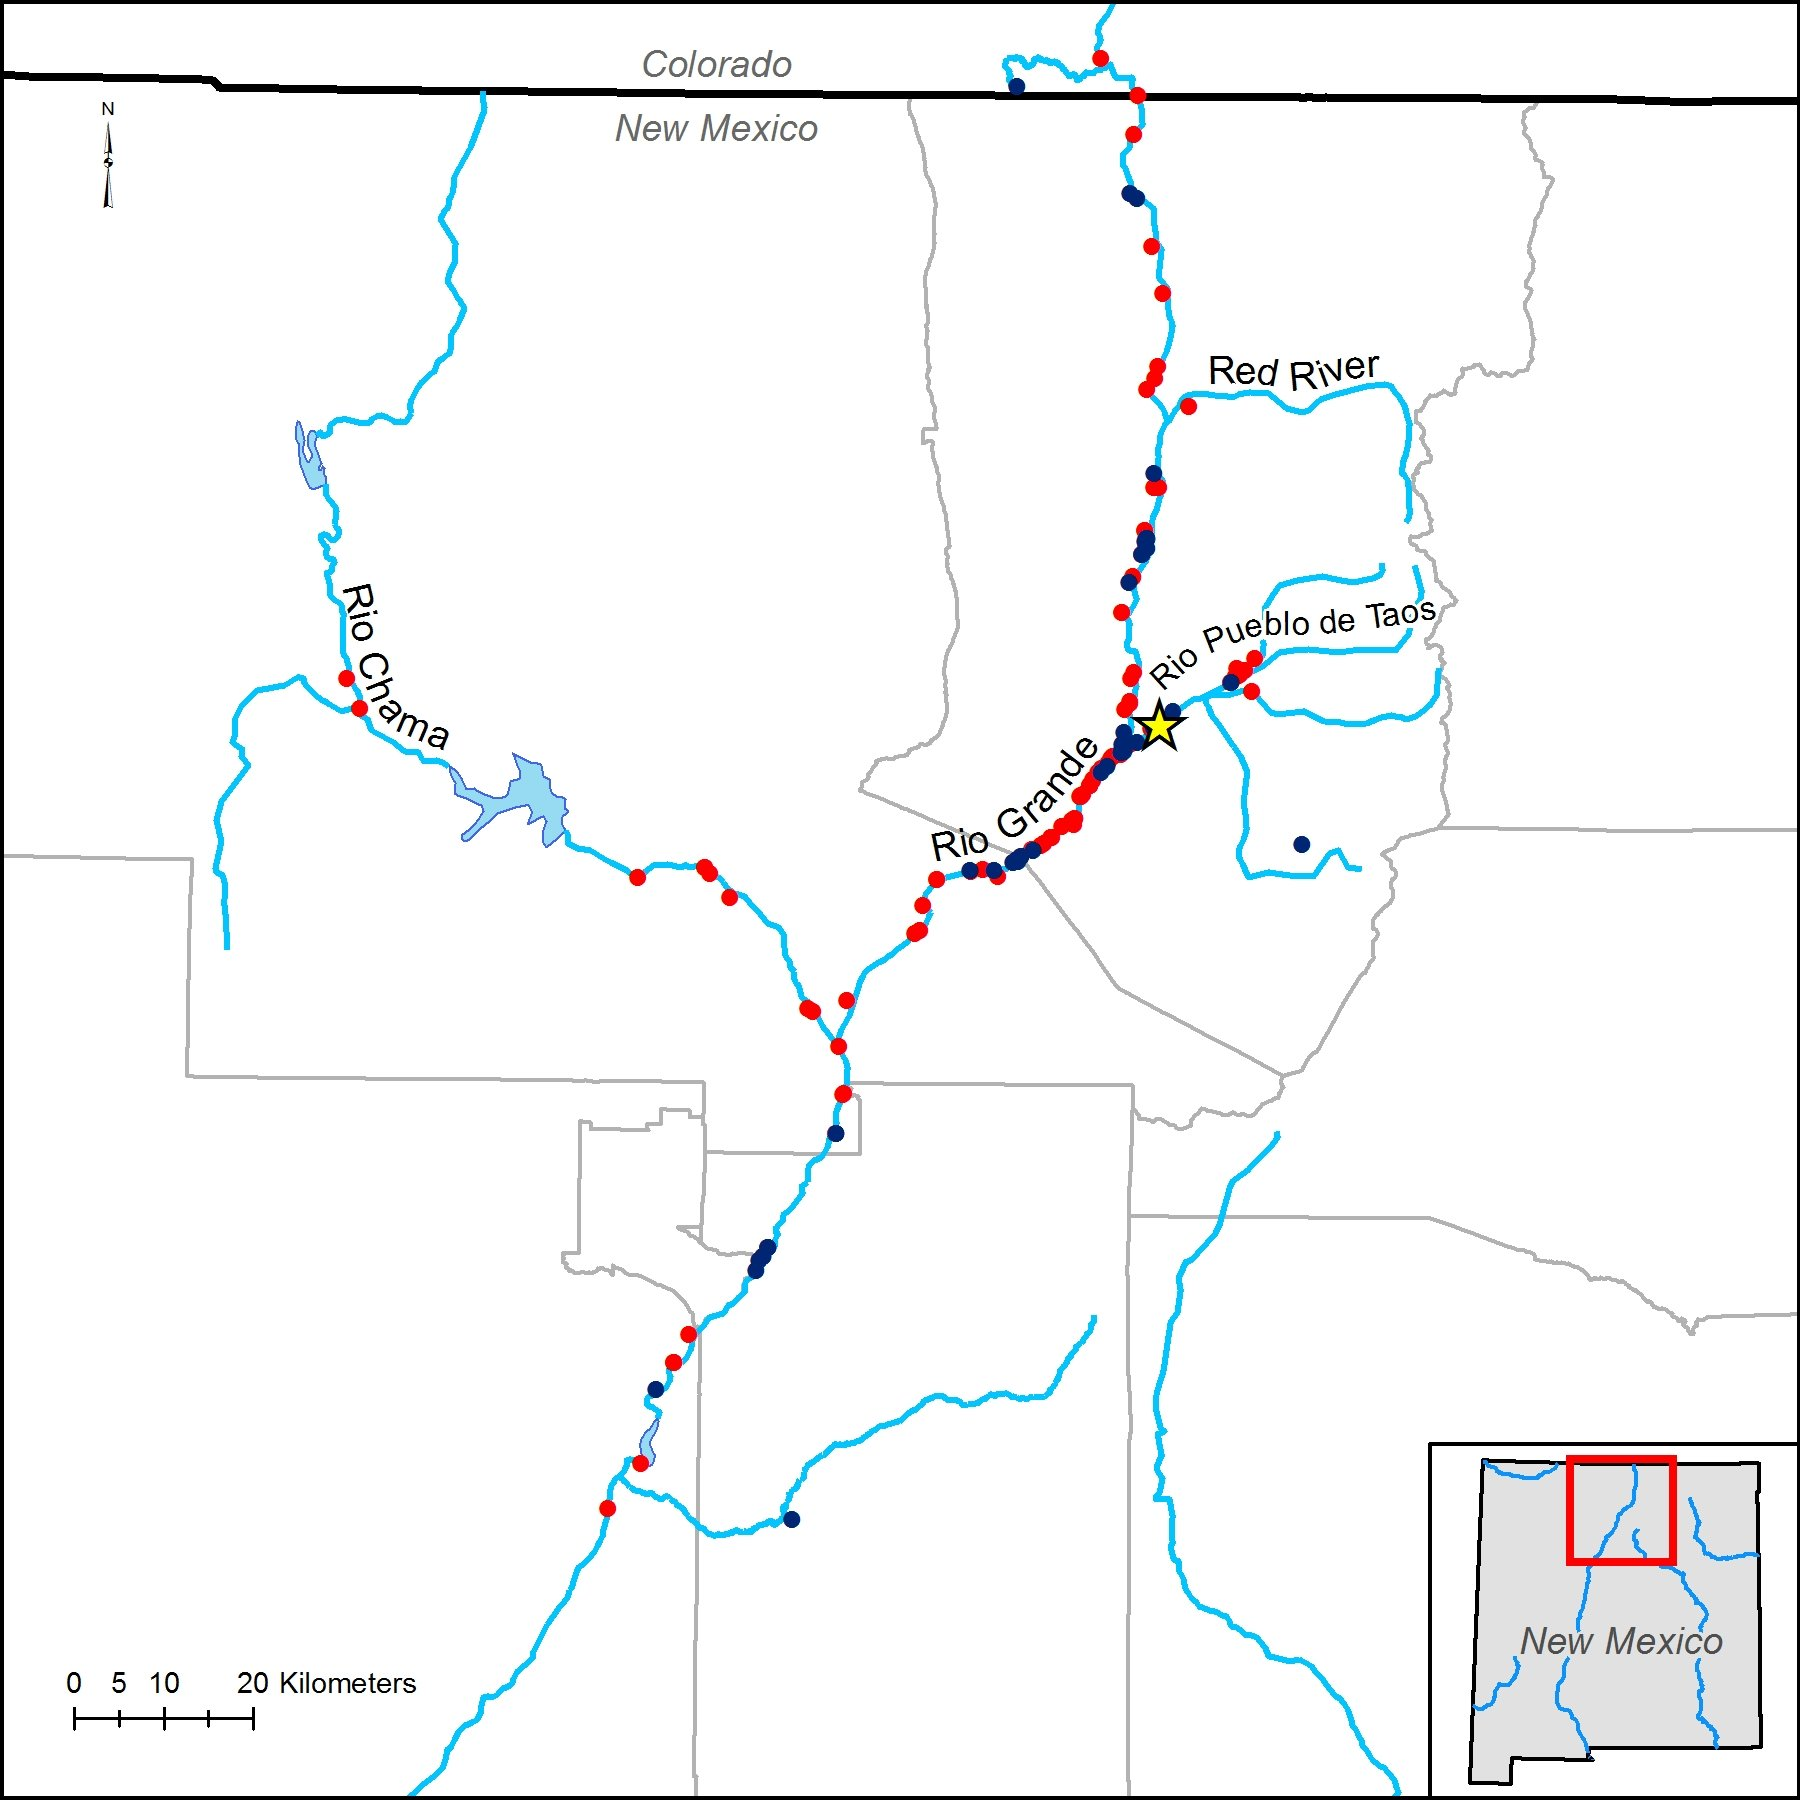 Rio Grande River New Mexico Map.Savage M And Klingel J 2015 Citizen Monitoring After An Otter